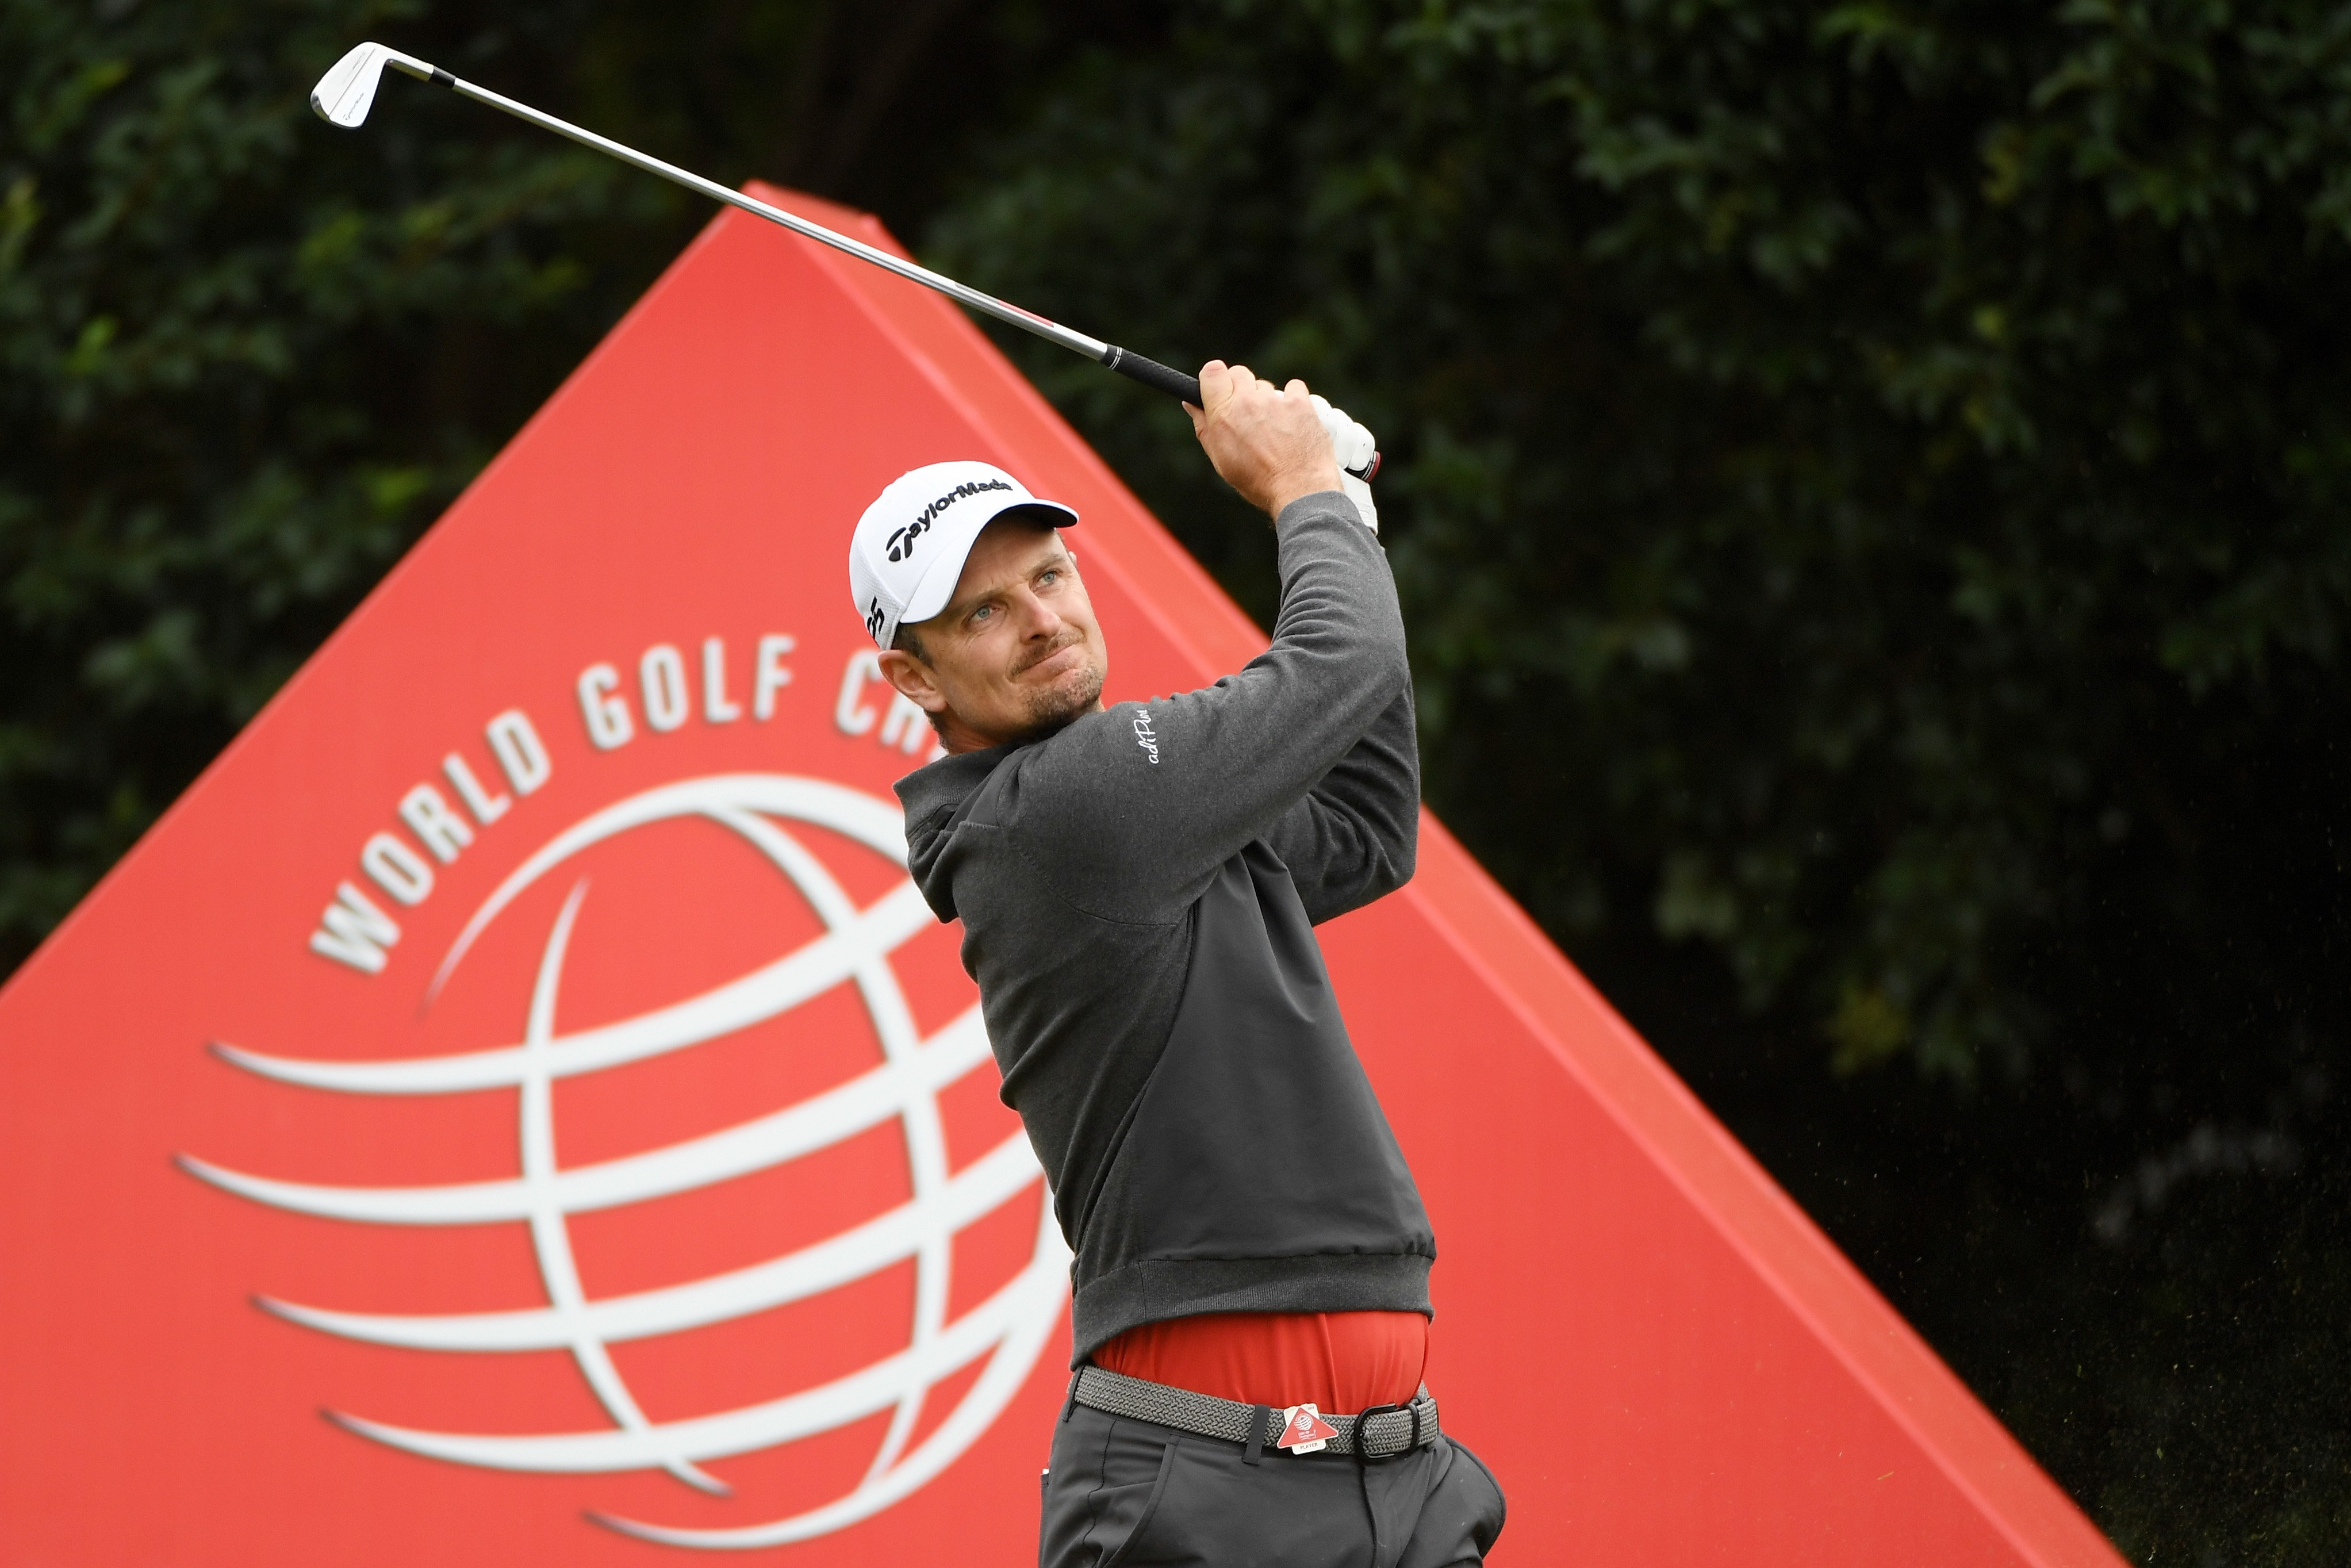 [NEWS] Justin Rose Won Wgc-Hsbc Champions